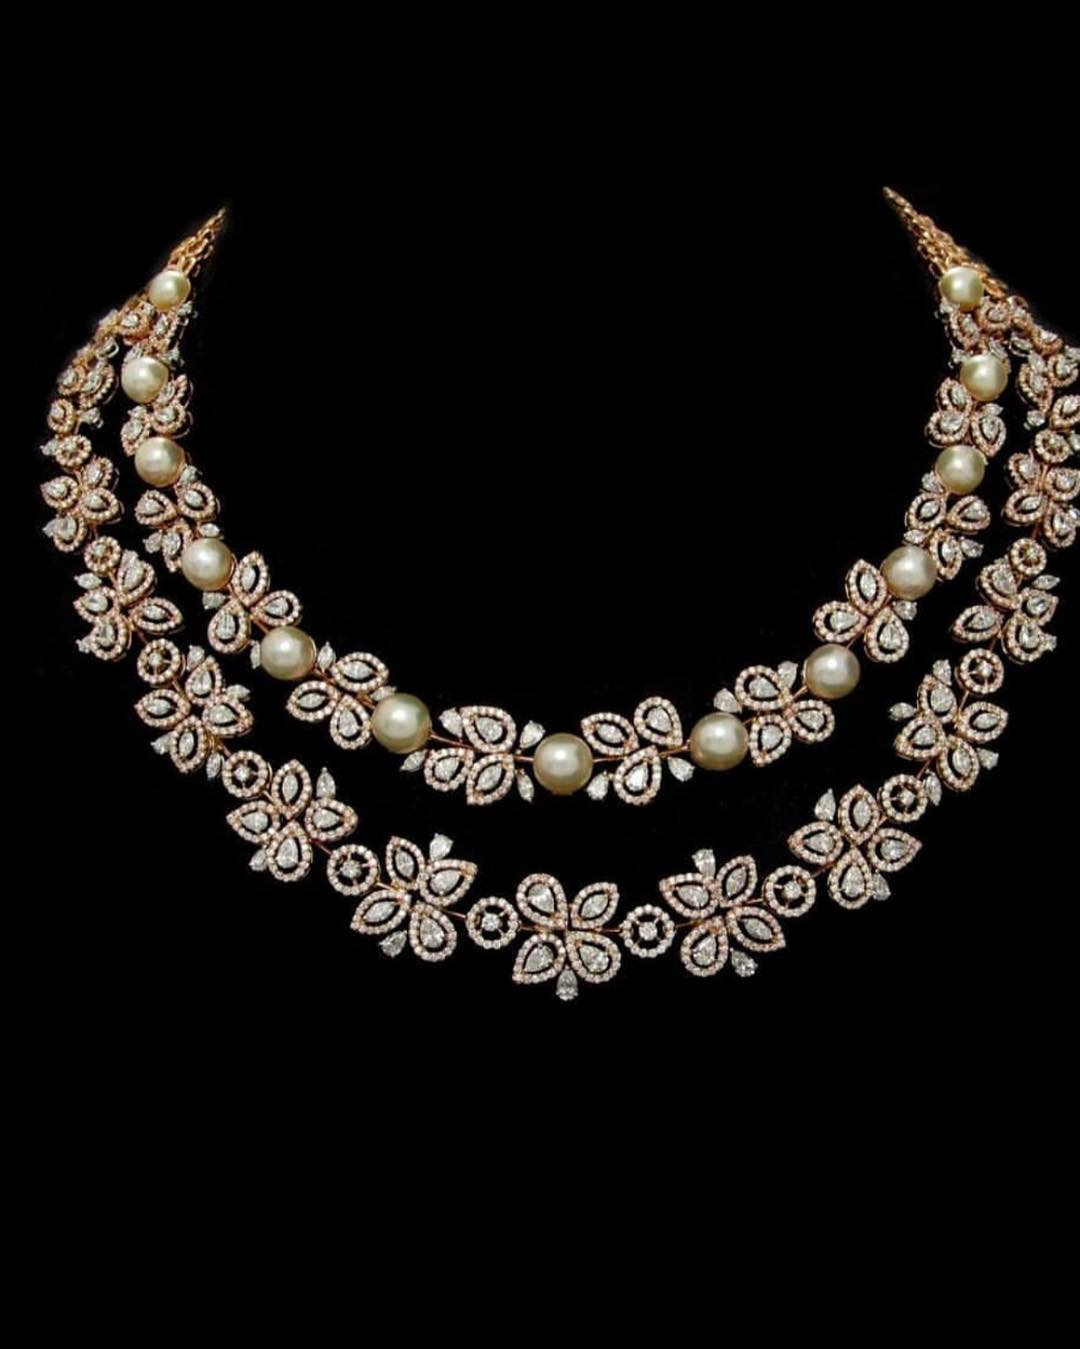 Stunning Gold Pearl Necklace From Aarni By Shravani